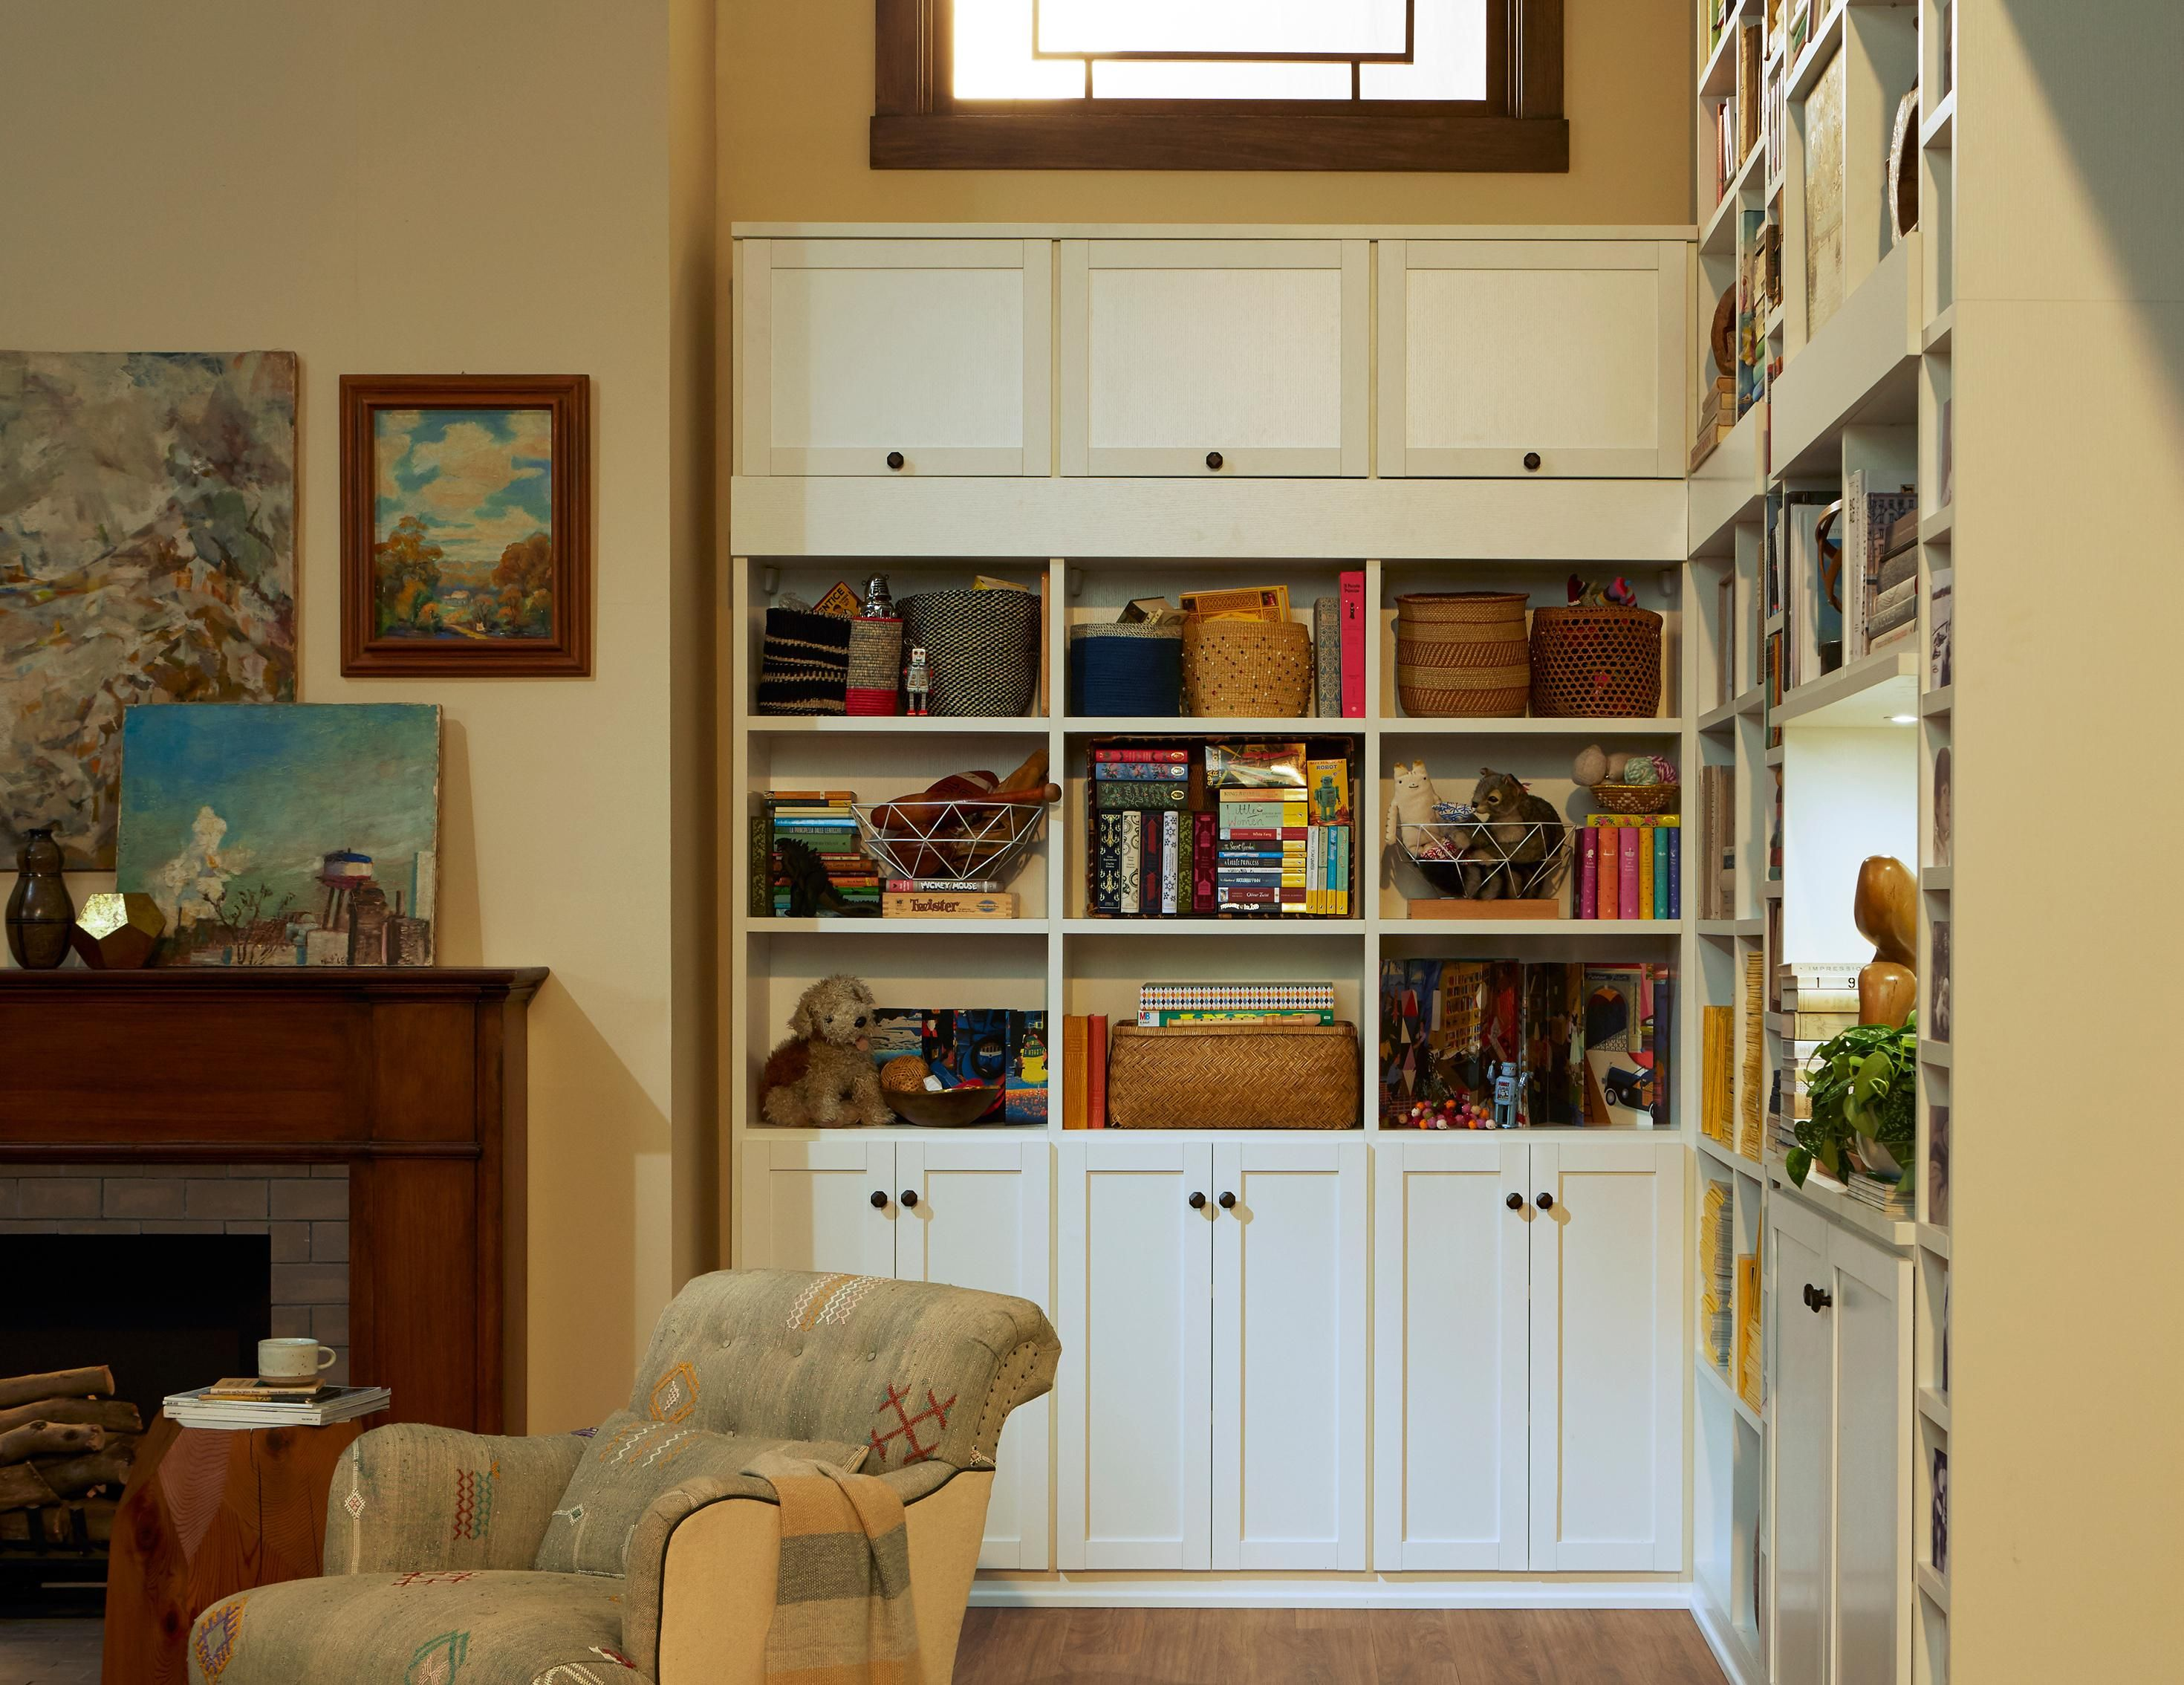 Do You Need Storage Solutions For Your Family Room Get Living Ideas And A Free Design Consultation From California Closets